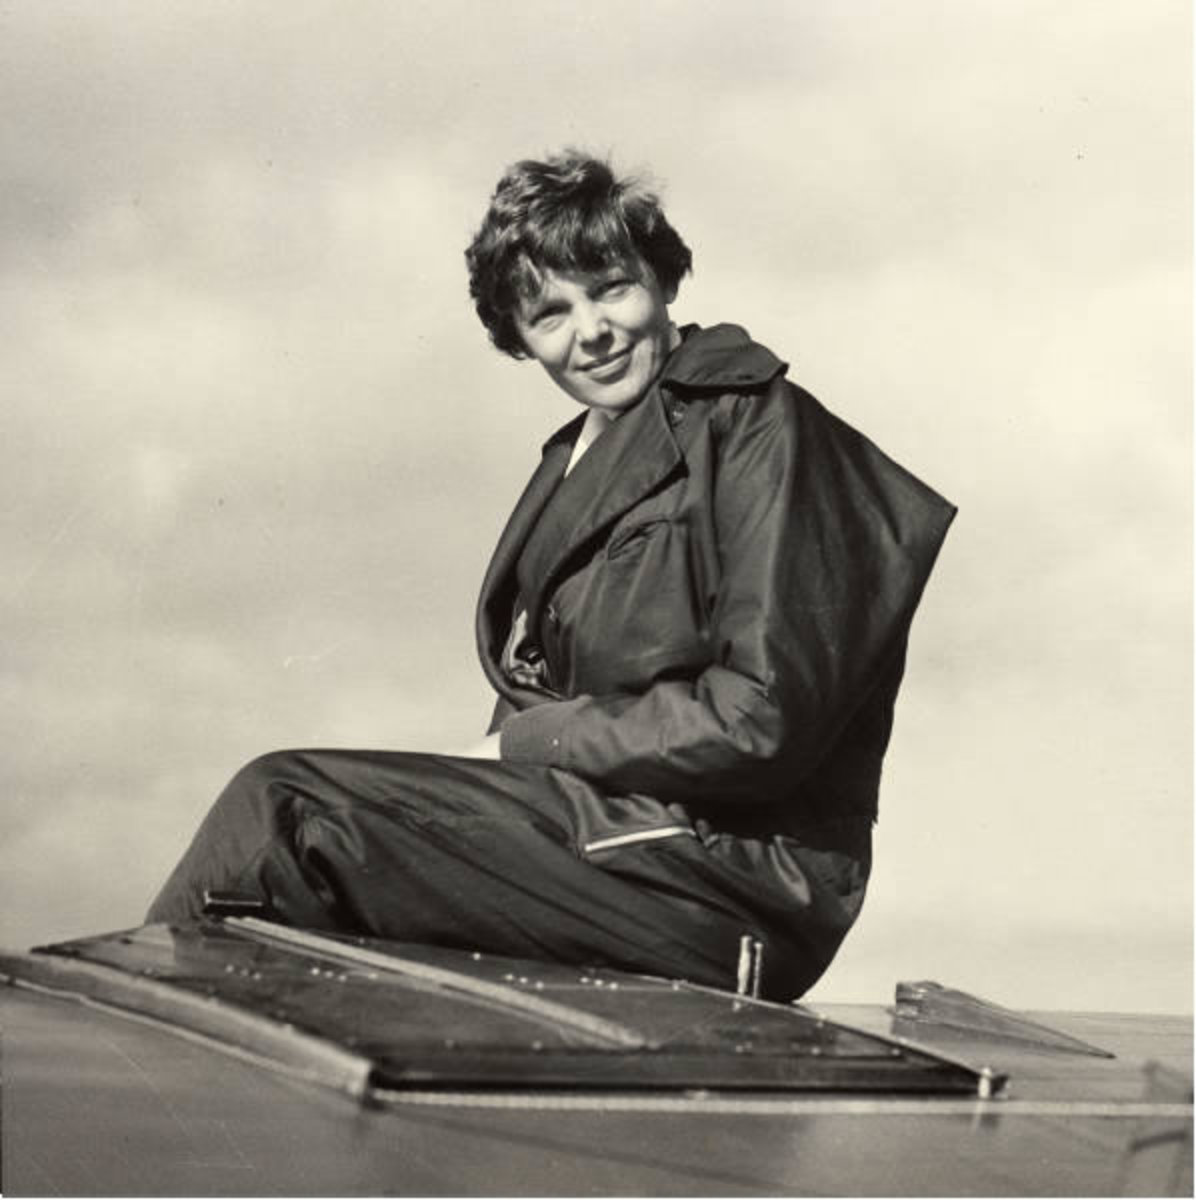 Amelia Earhart: Amelia Earhart sitting on her plane, ca. 1935. George Palmer Putnam Collection of Amelia Earhart Papers, Courtesy of Purdue University Libraries, Karnes Archives and Special Collections.